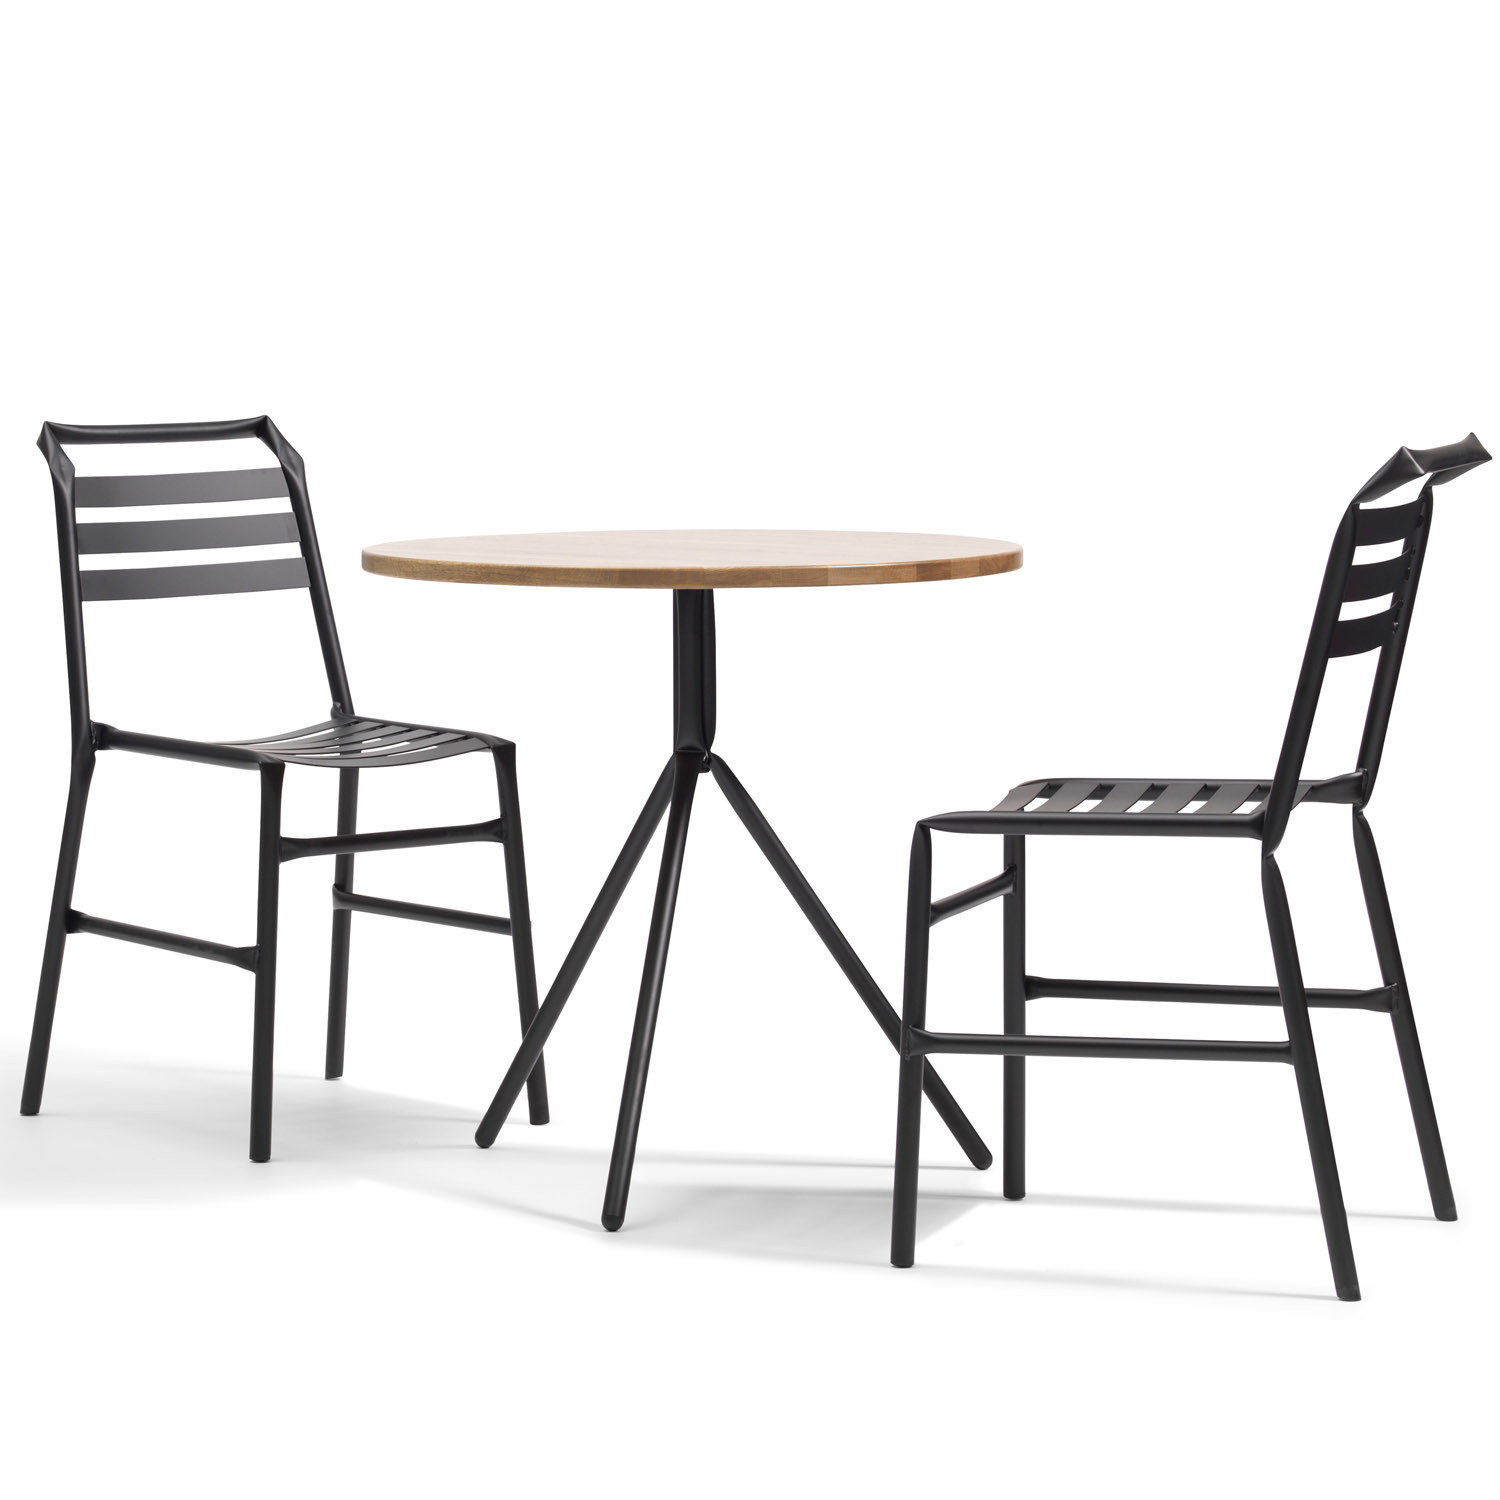 Straw Bistro Table L35 by Osko+Deichmann